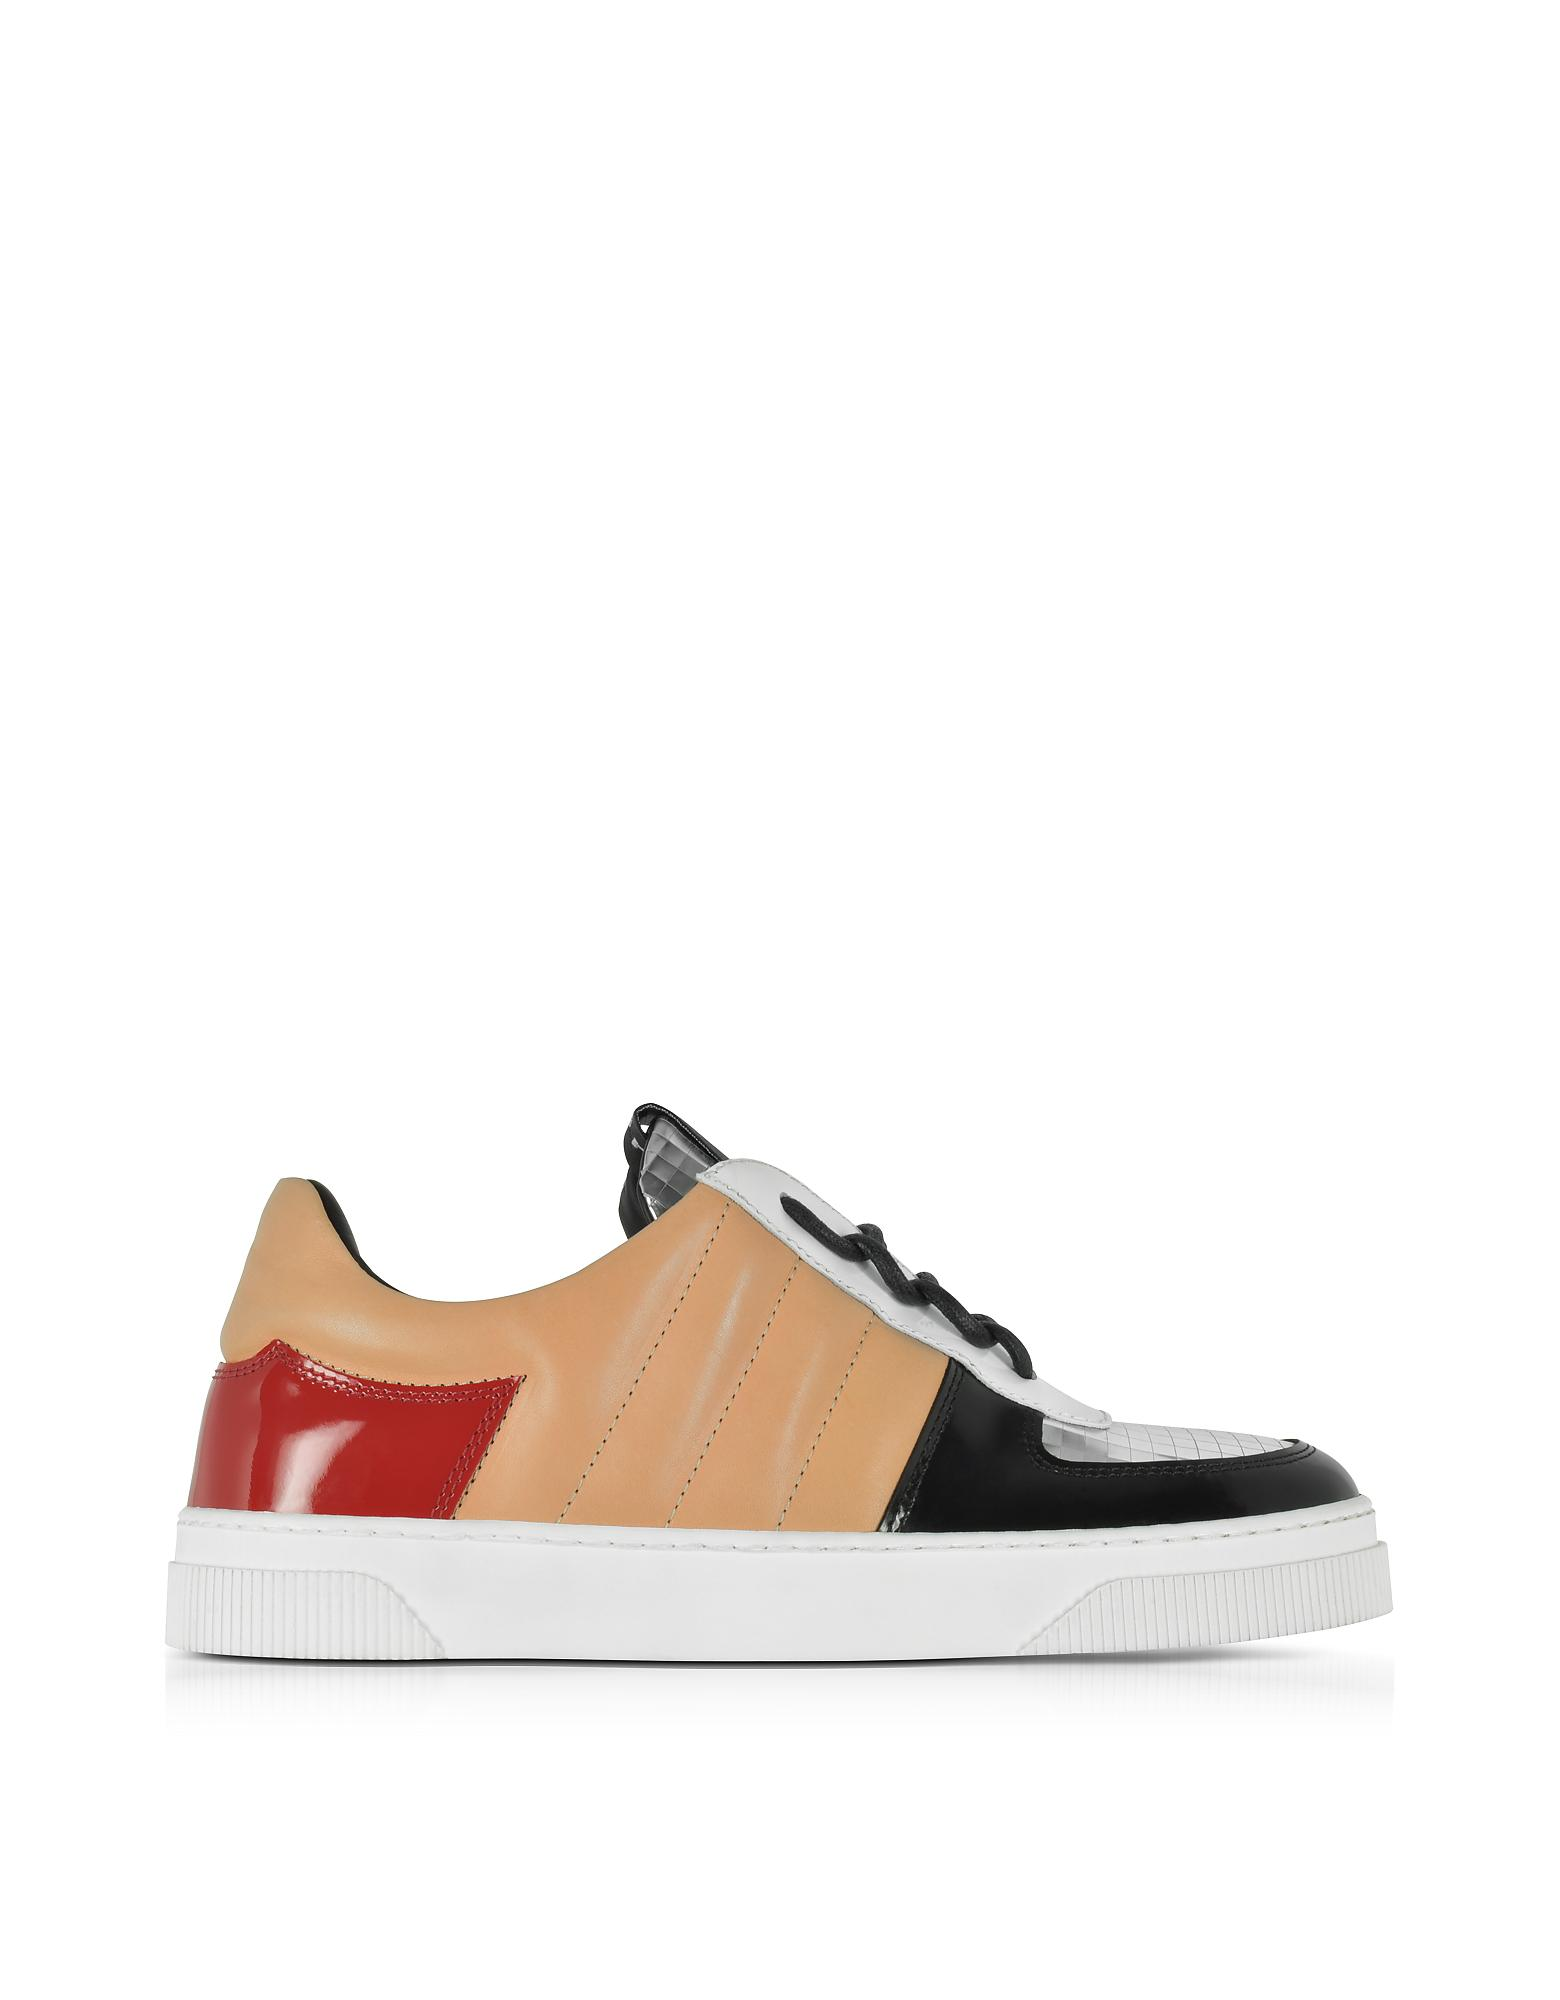 Proenza Schouler Designer Shoes, Light Nappa and Laminated Leather Sneakers